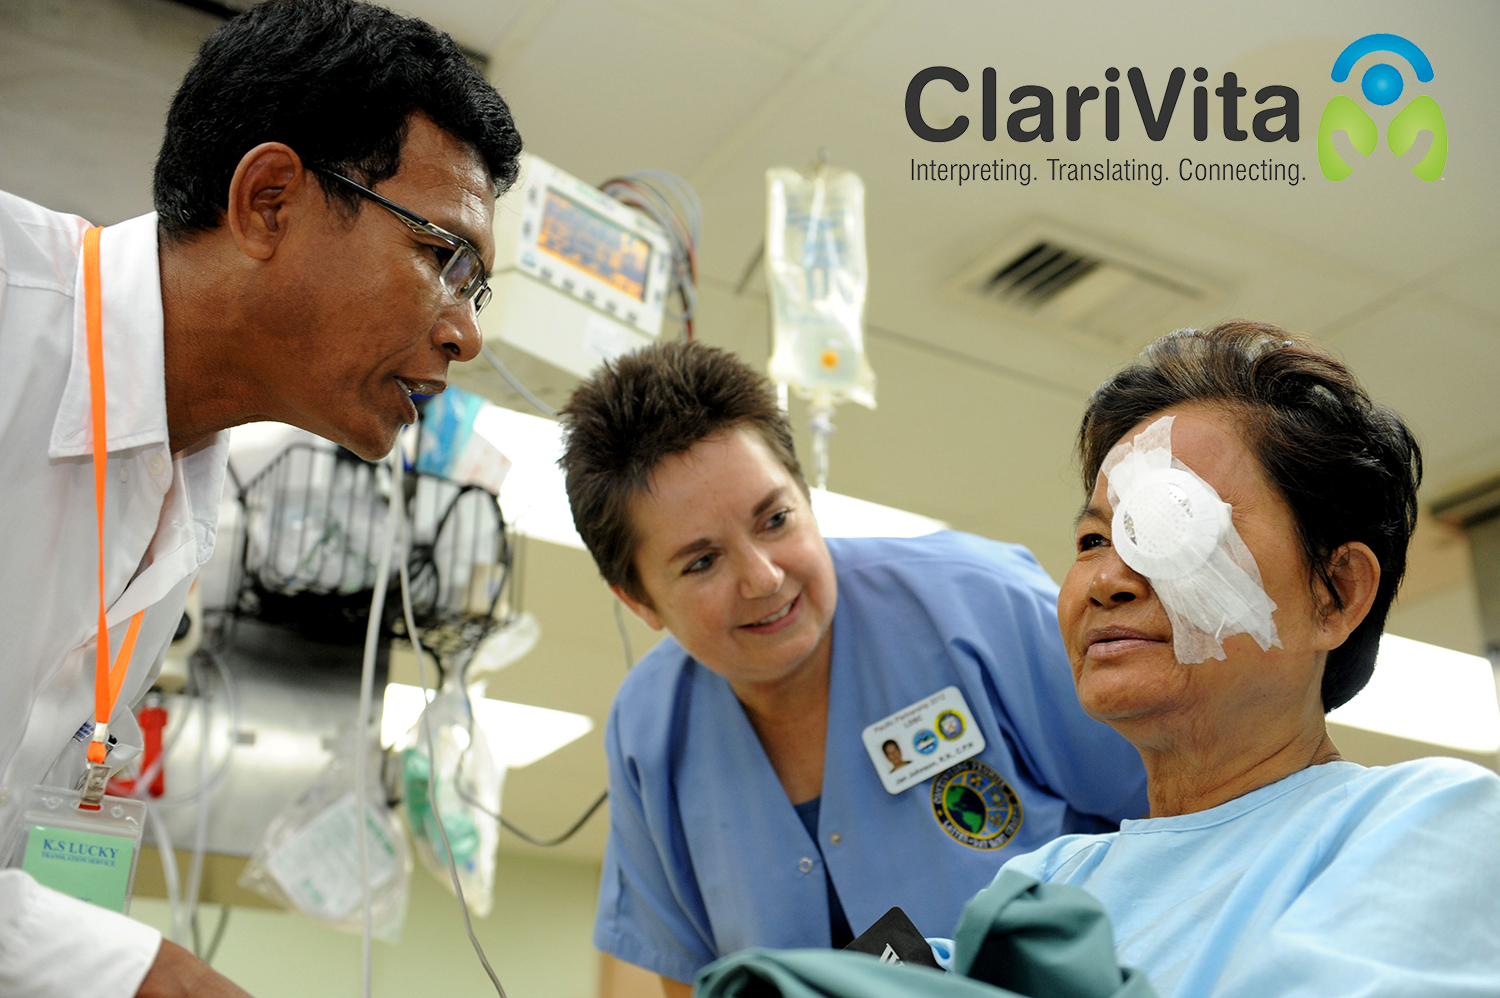 clarivita interpreting service